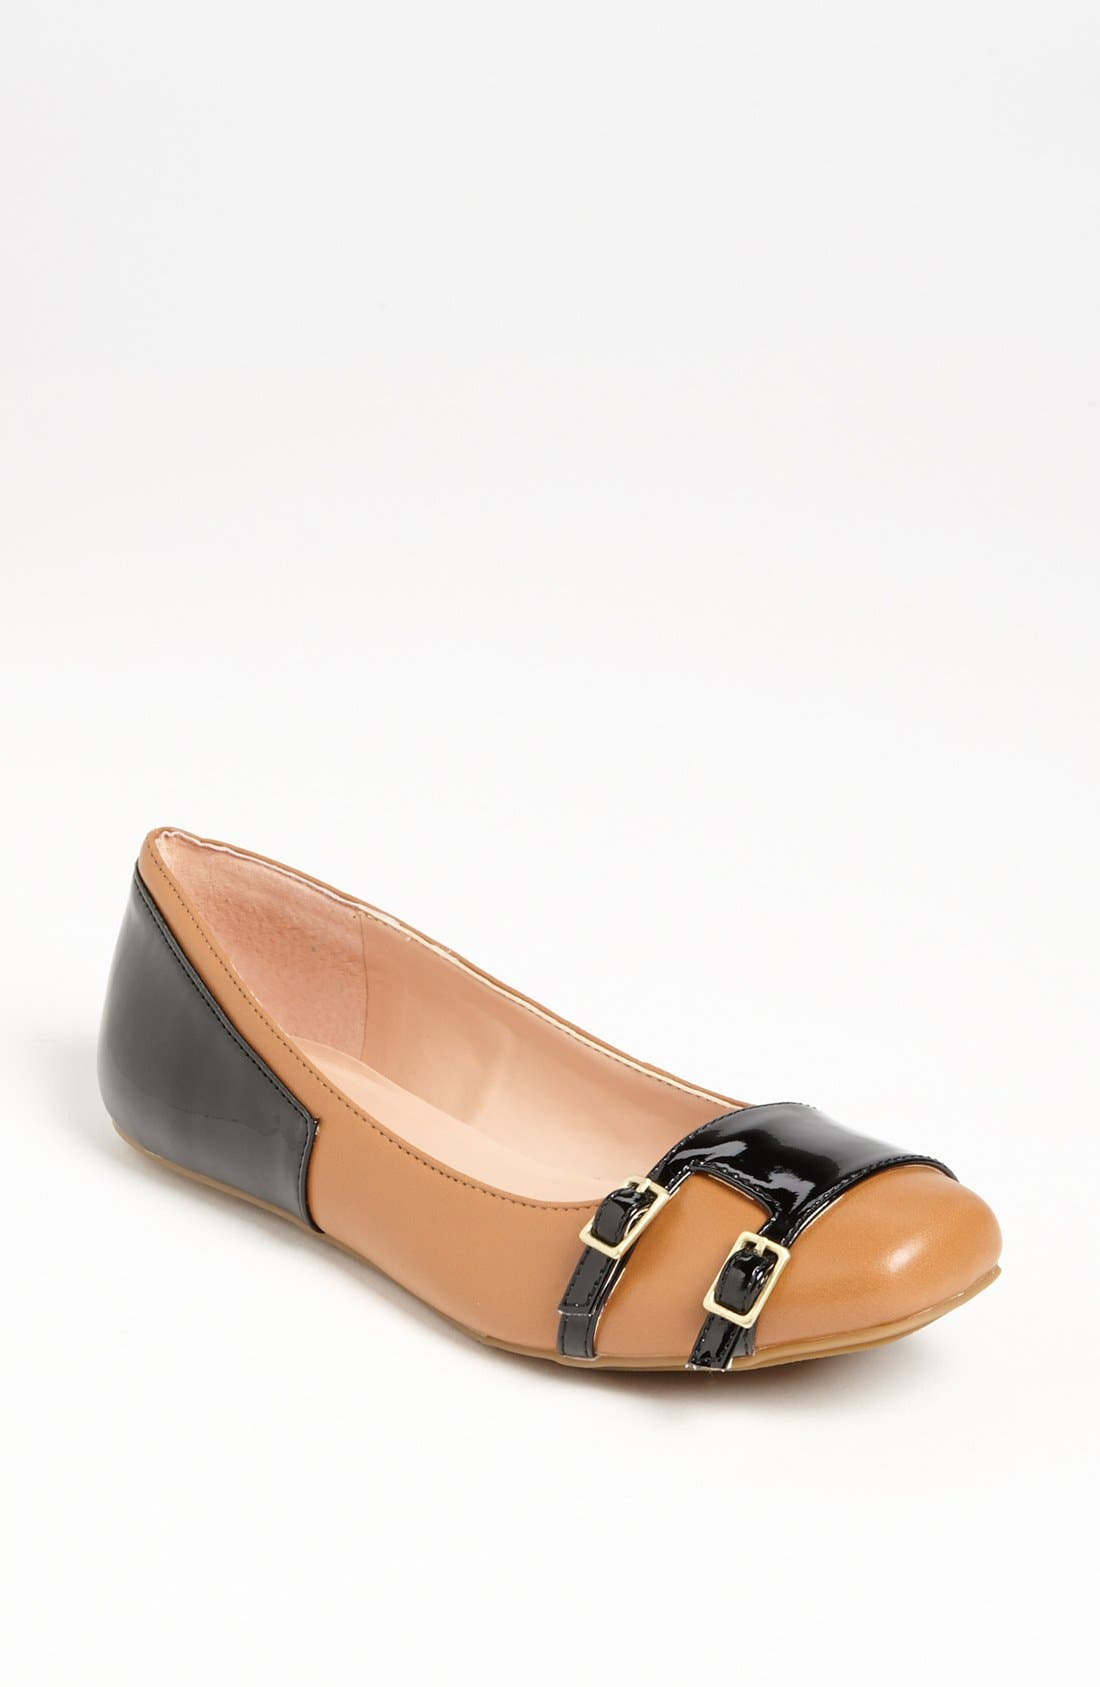 Alternate Image 1 Selected - Sole Society 'Nia' Flat